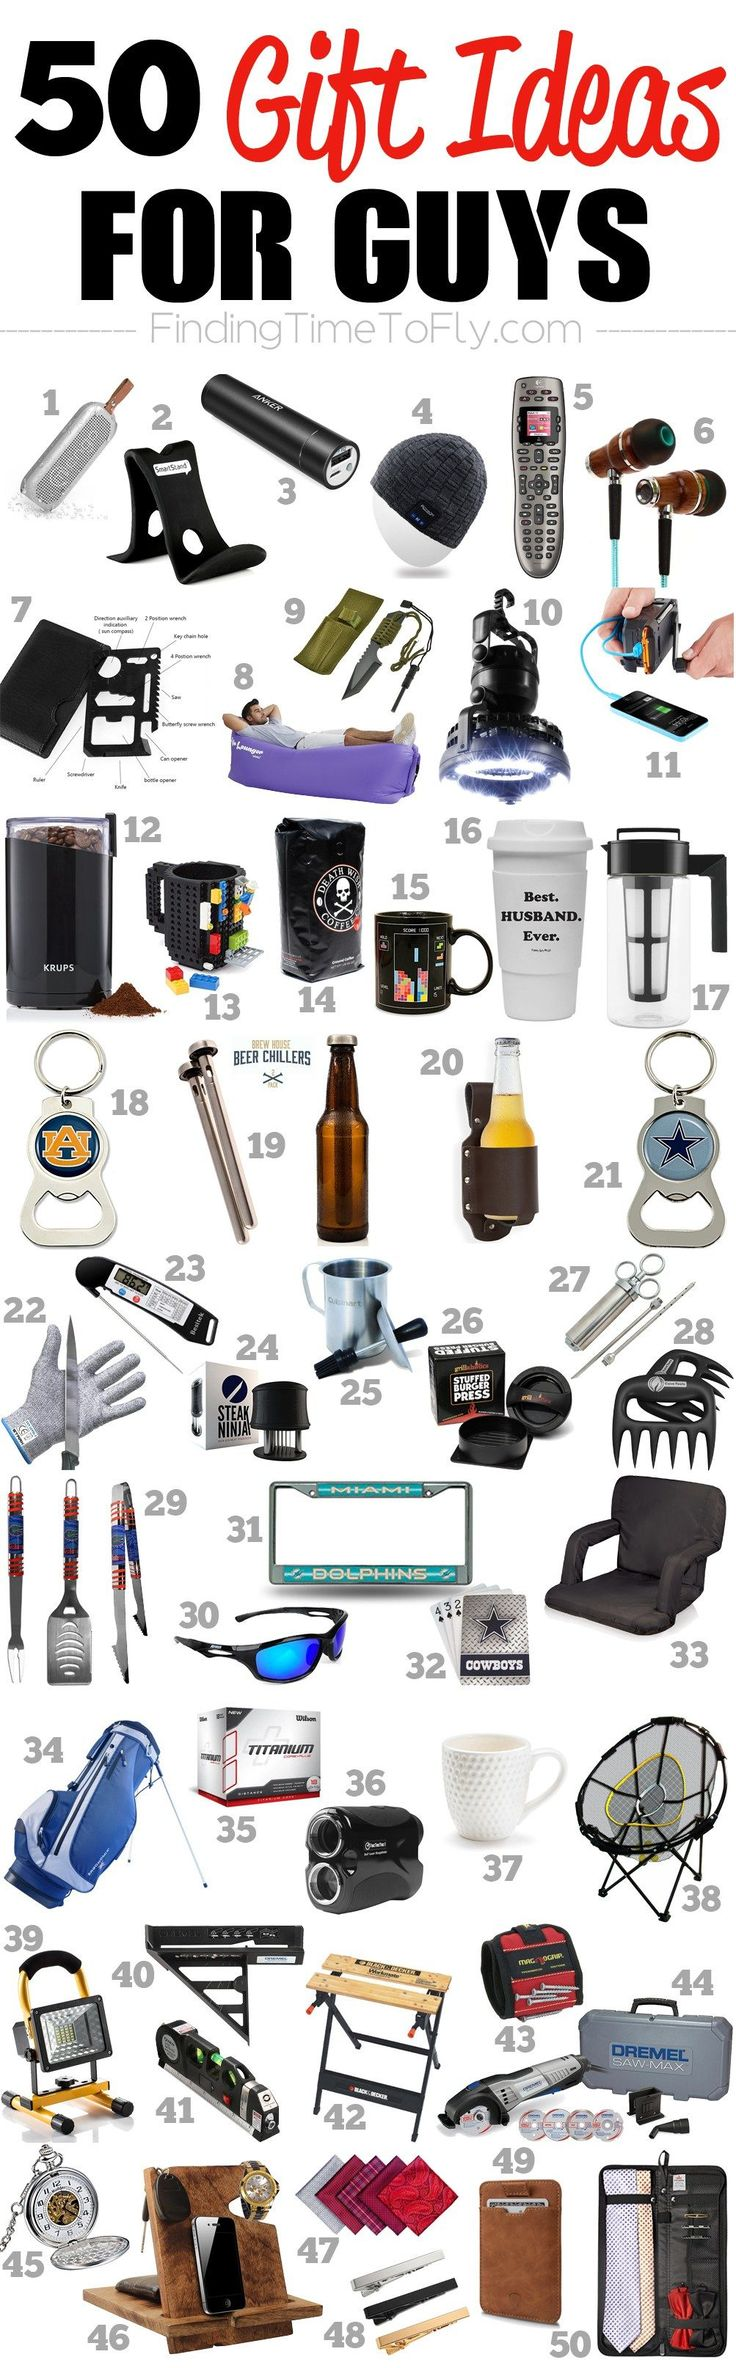 78 Best Male Teacher Gift Ideas Images On Pinterest